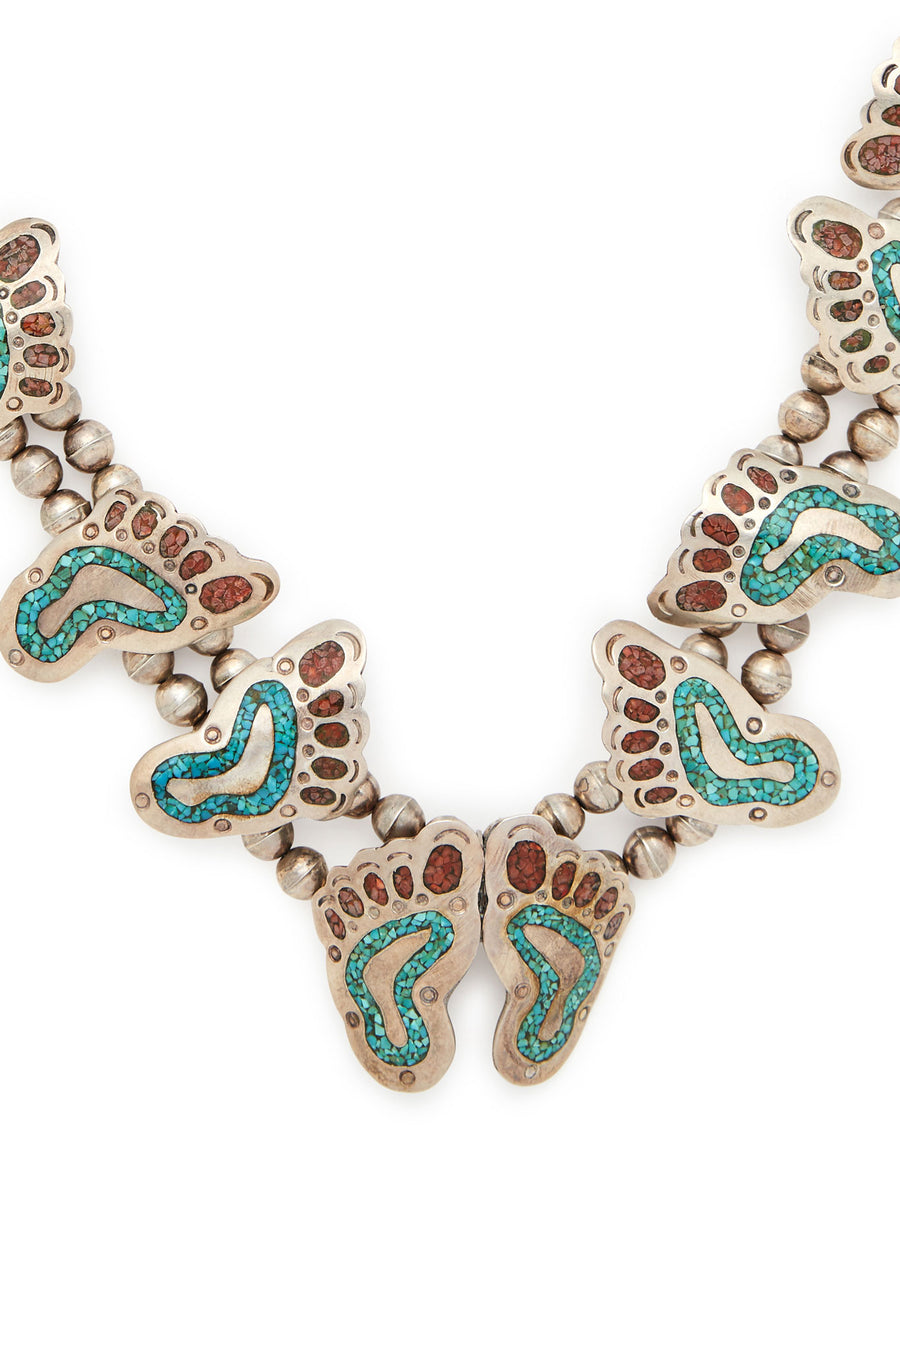 Zuni Sterling Silver Turquoise and Coral Feet Squash Blossom Necklace